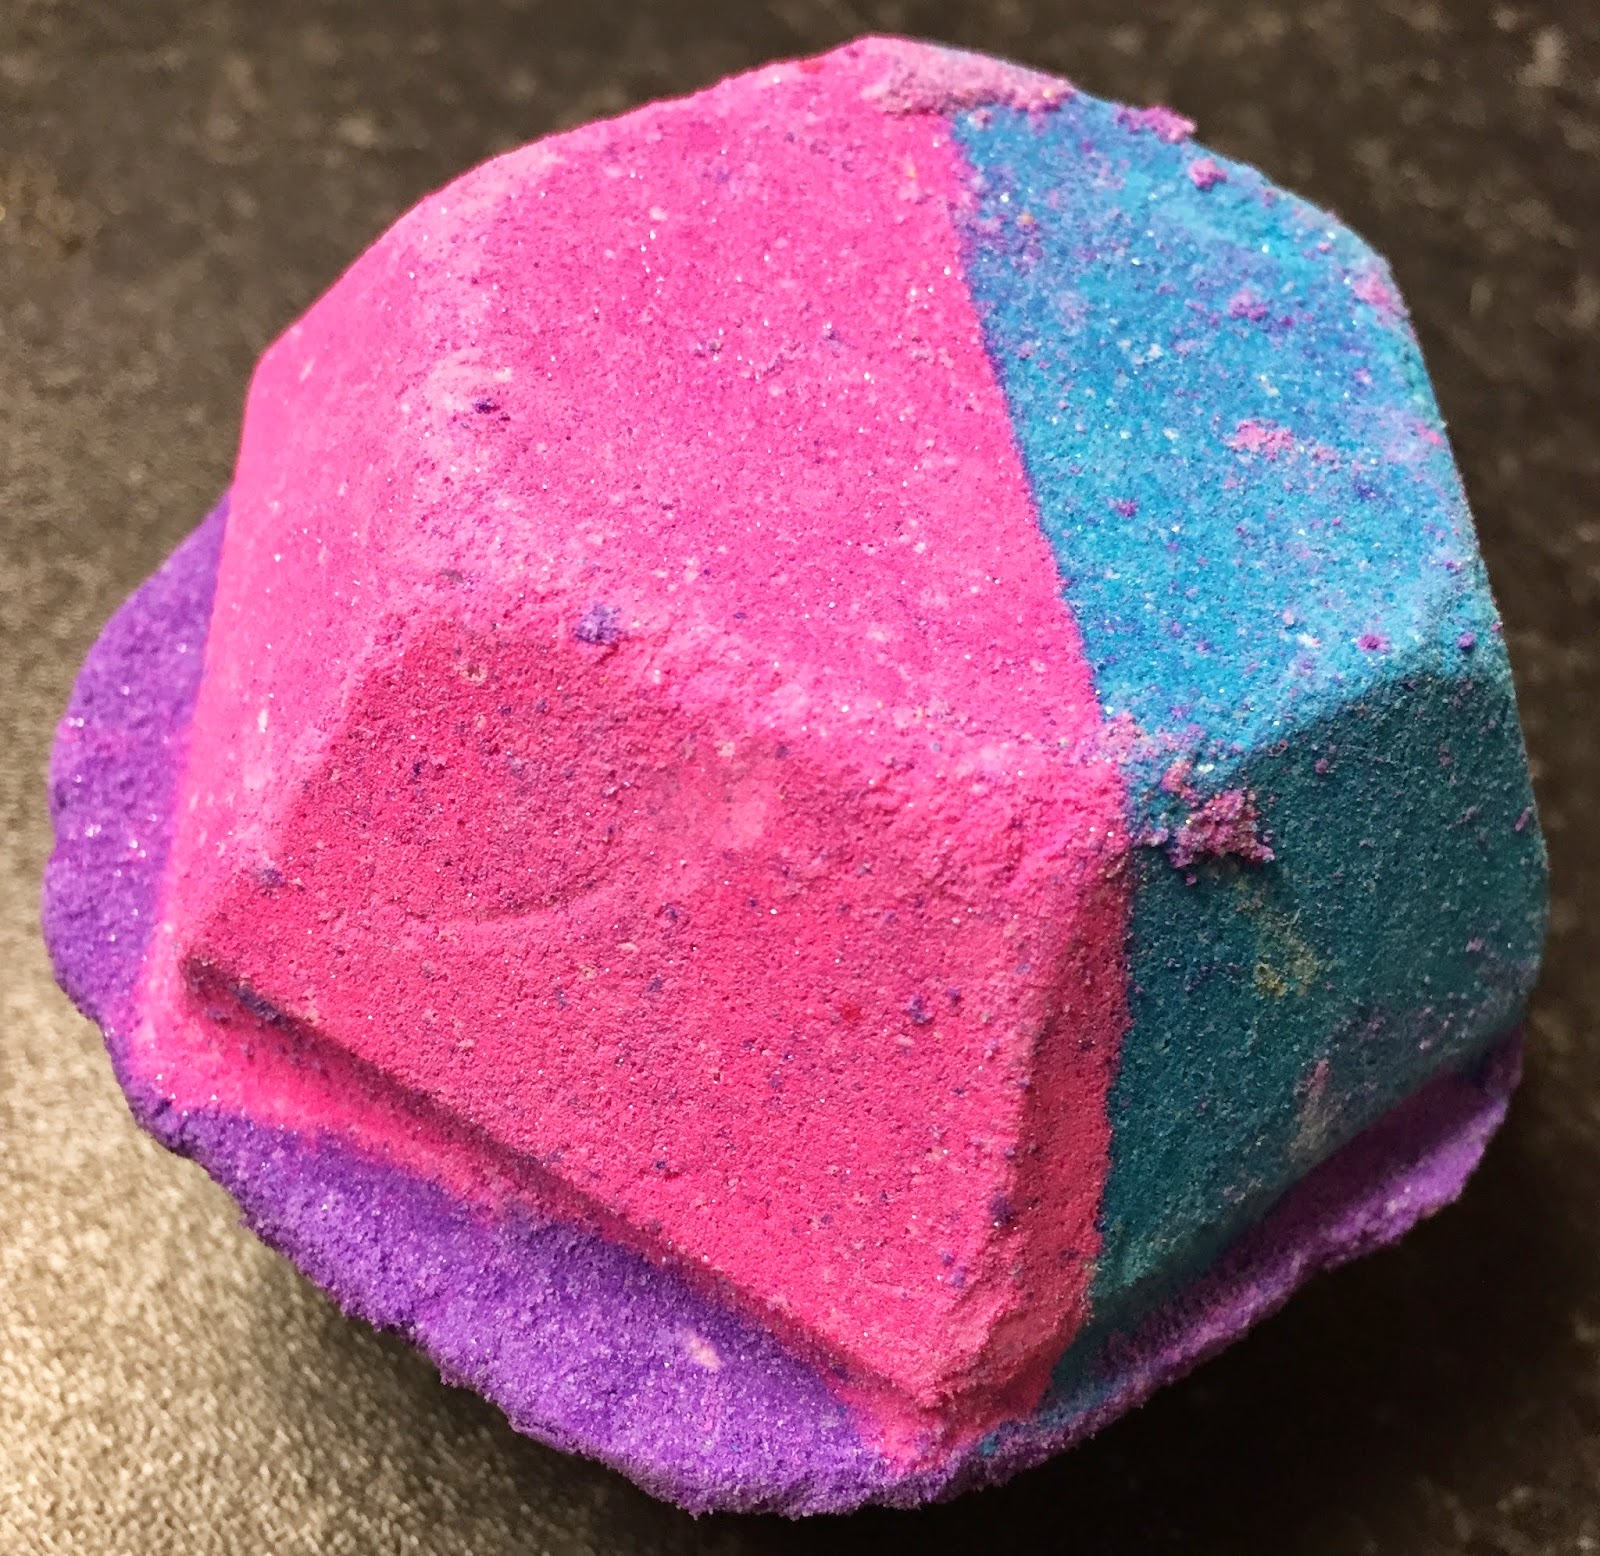 All Things Lush UK The Experimenter Bath Bomb